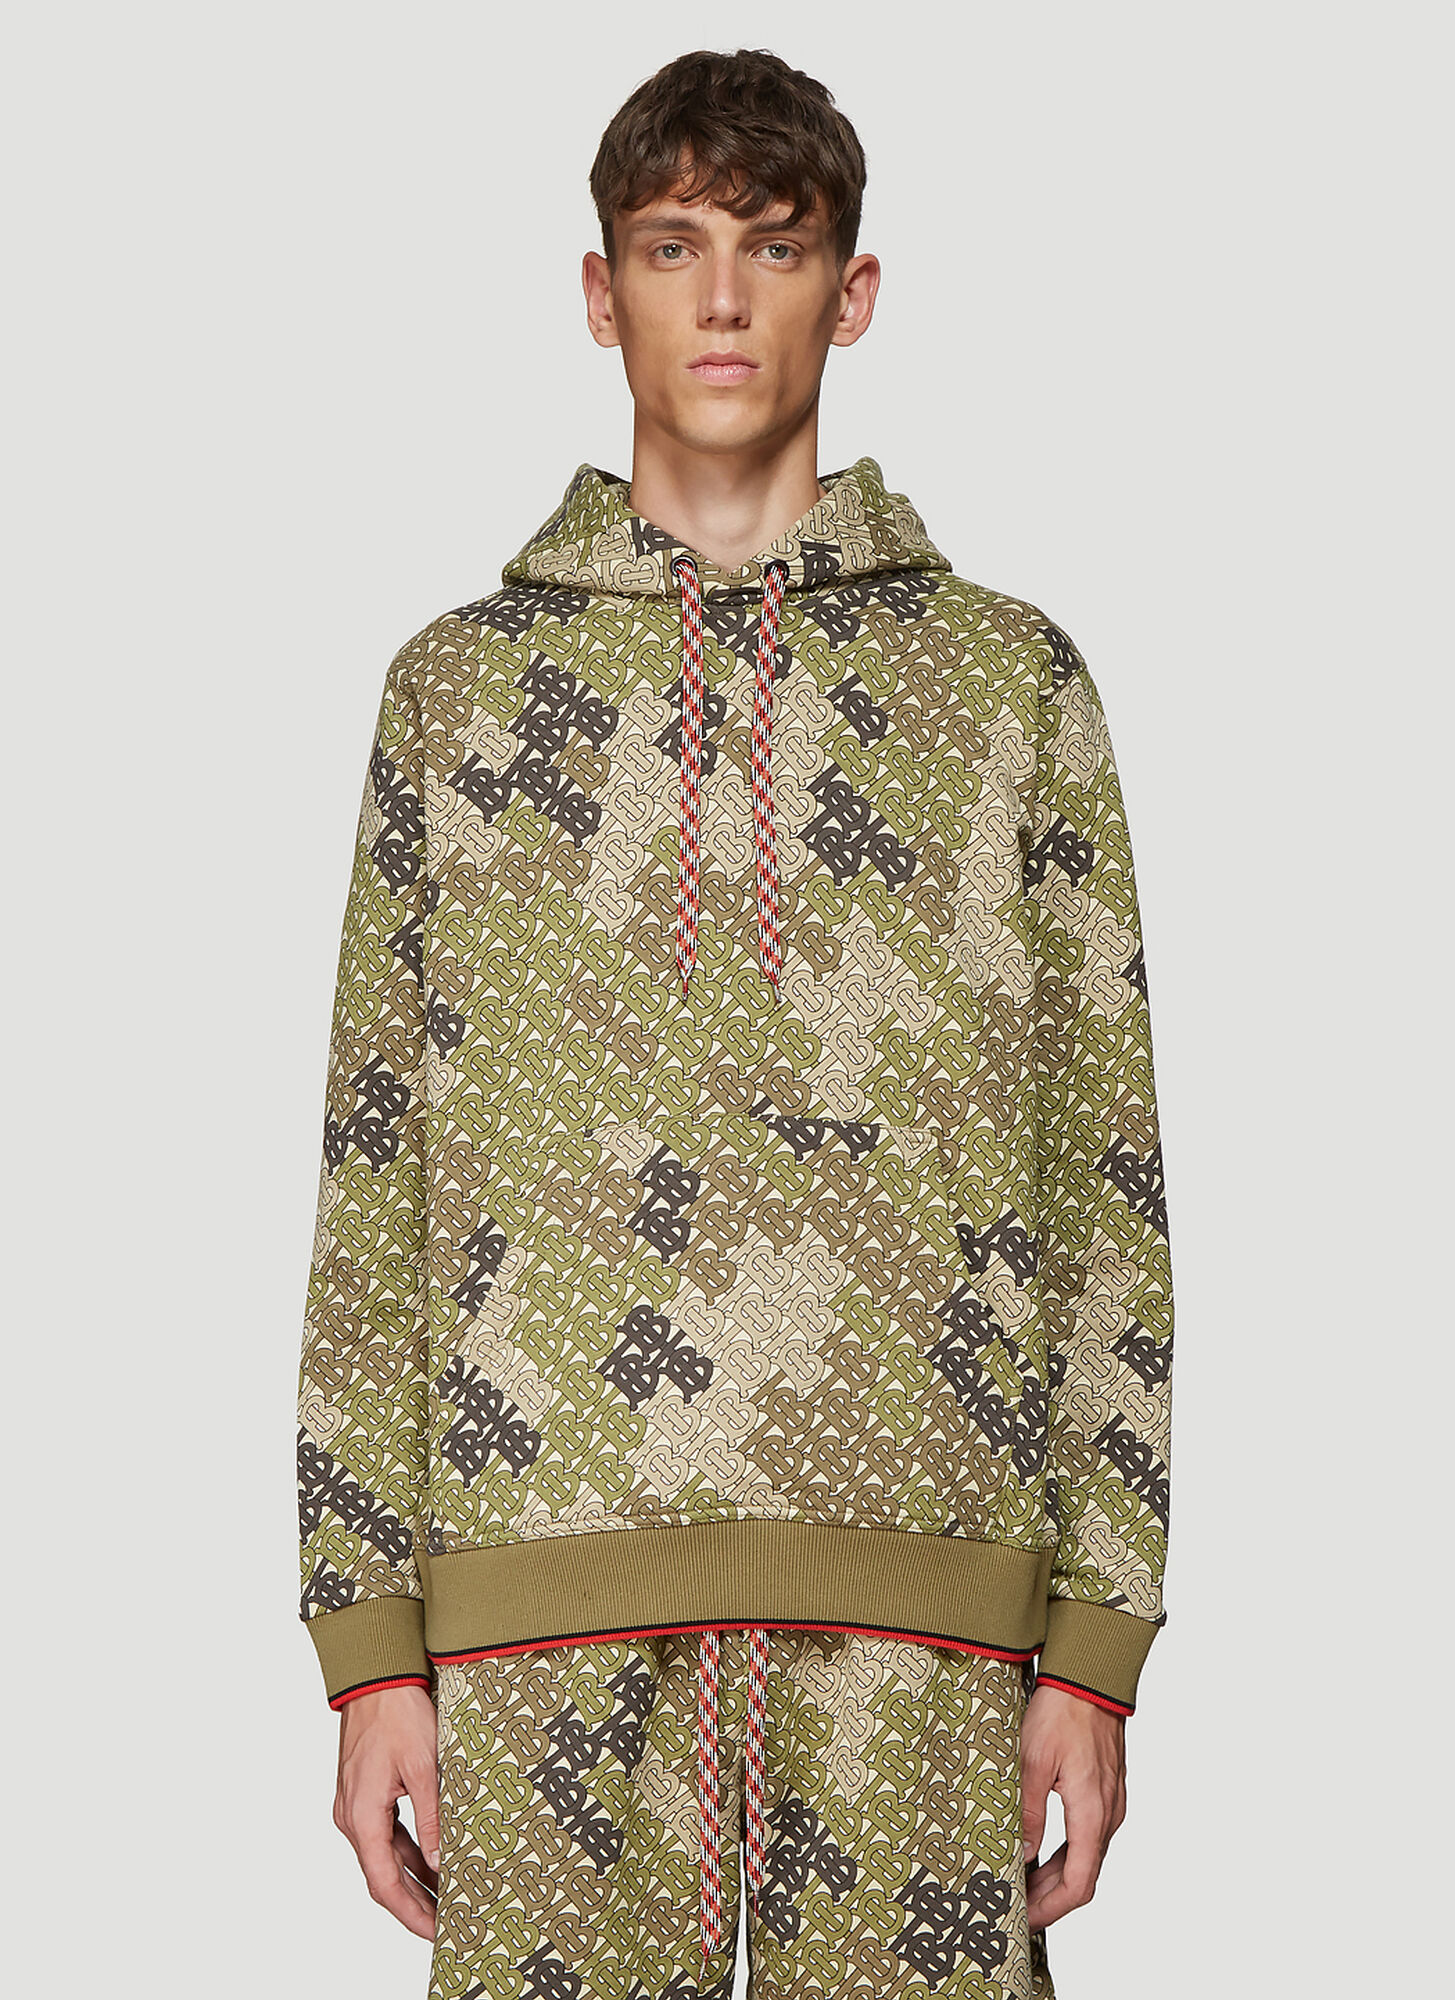 Burberry Monogram Hooded Sweater in Green size S